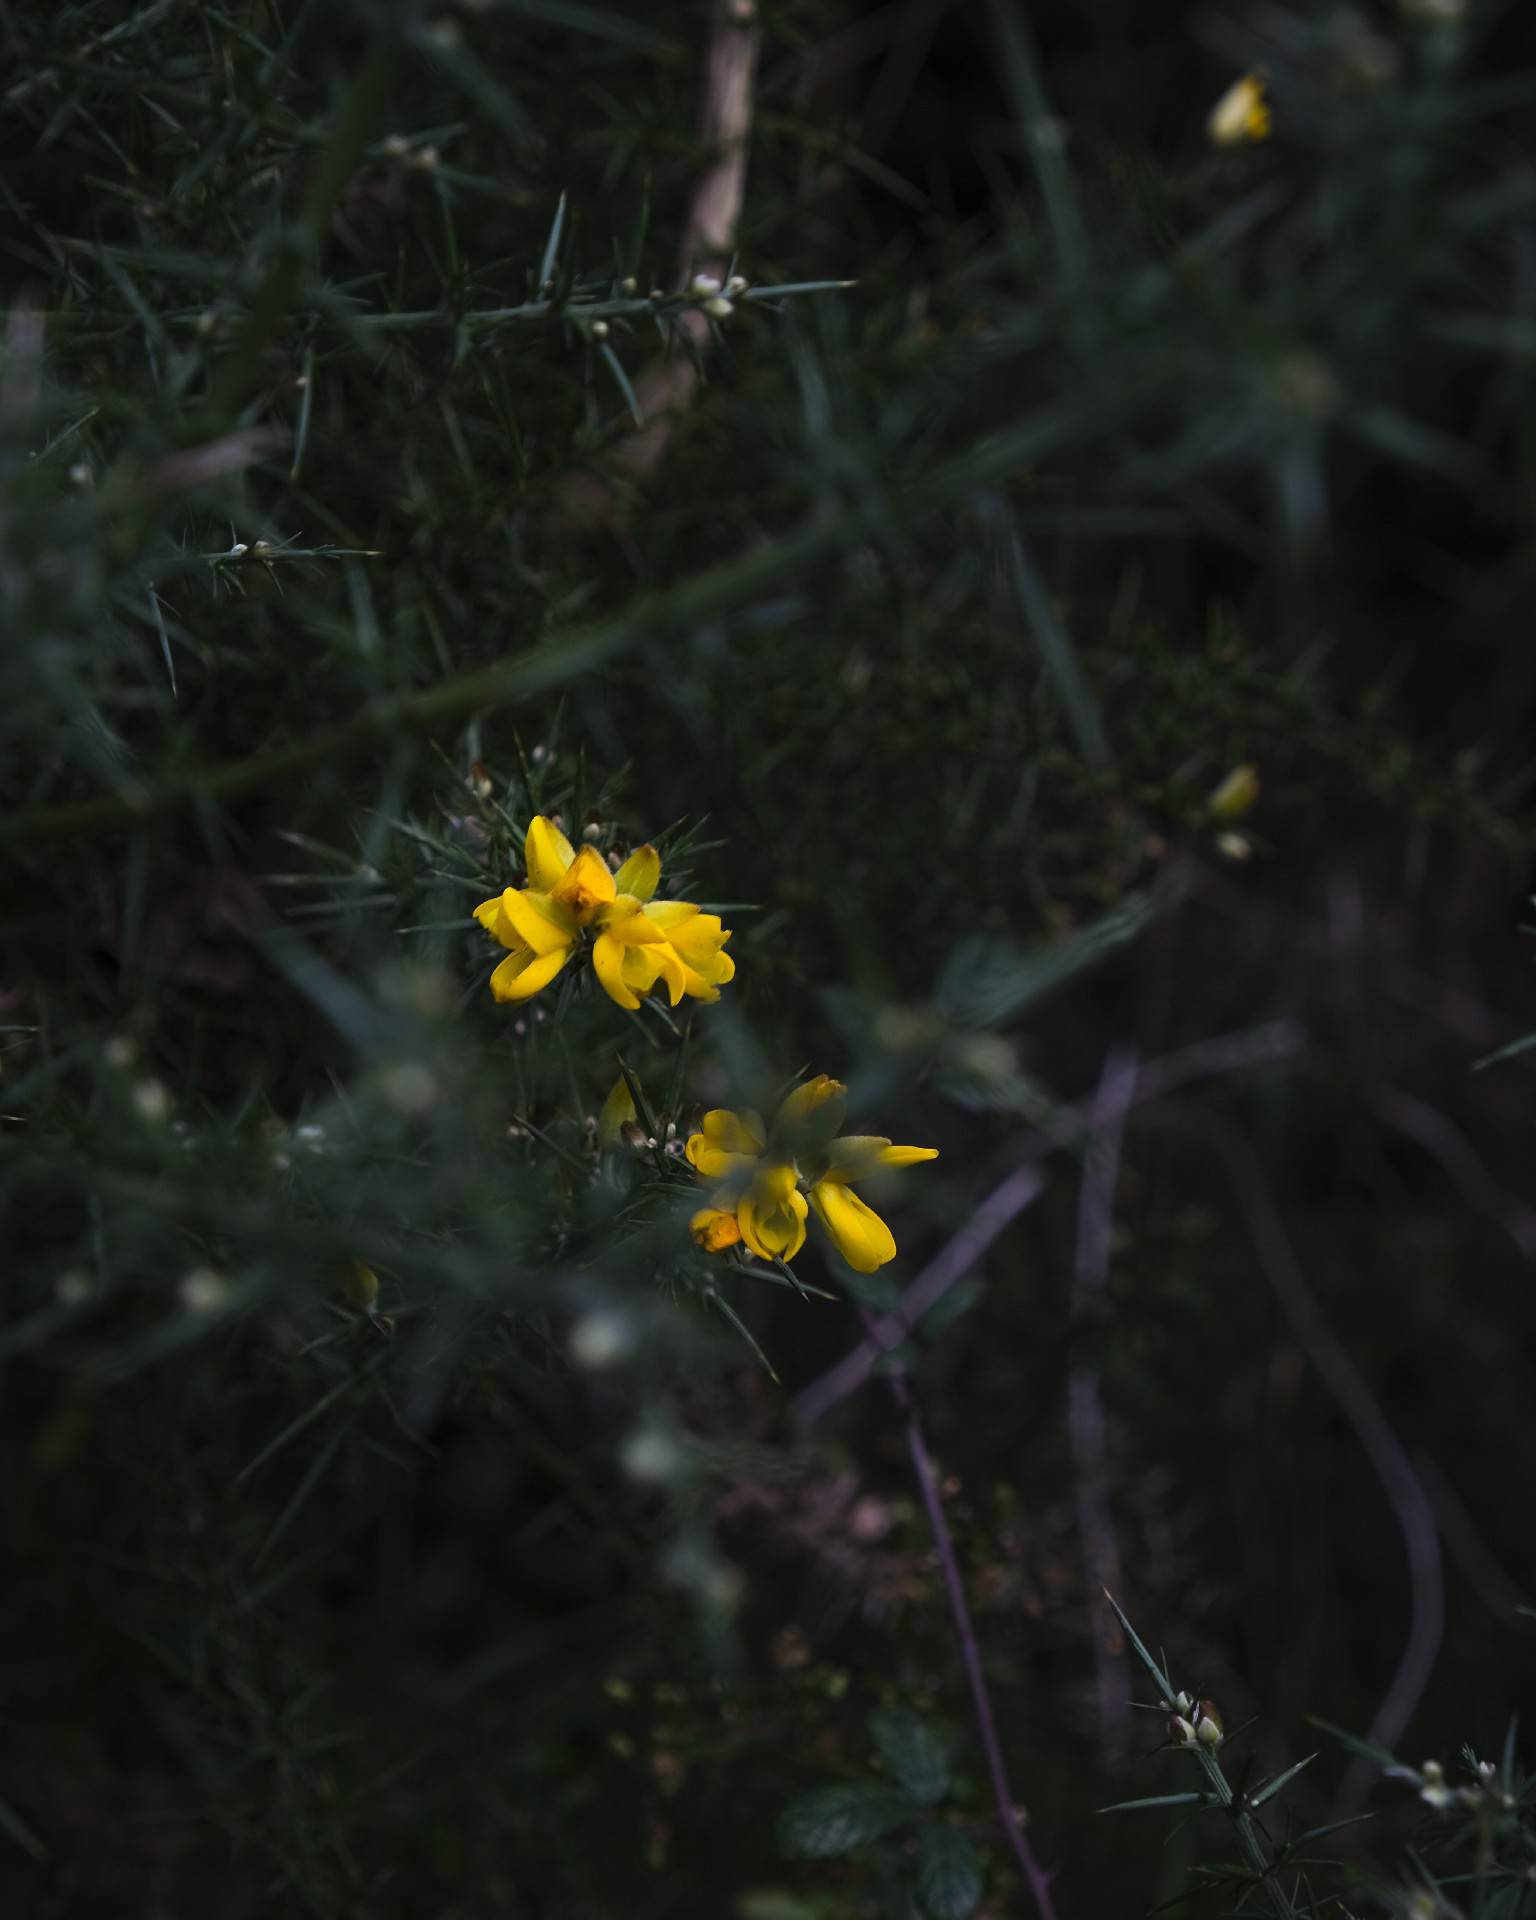 A yellow flower surrounded by dark green leaves.